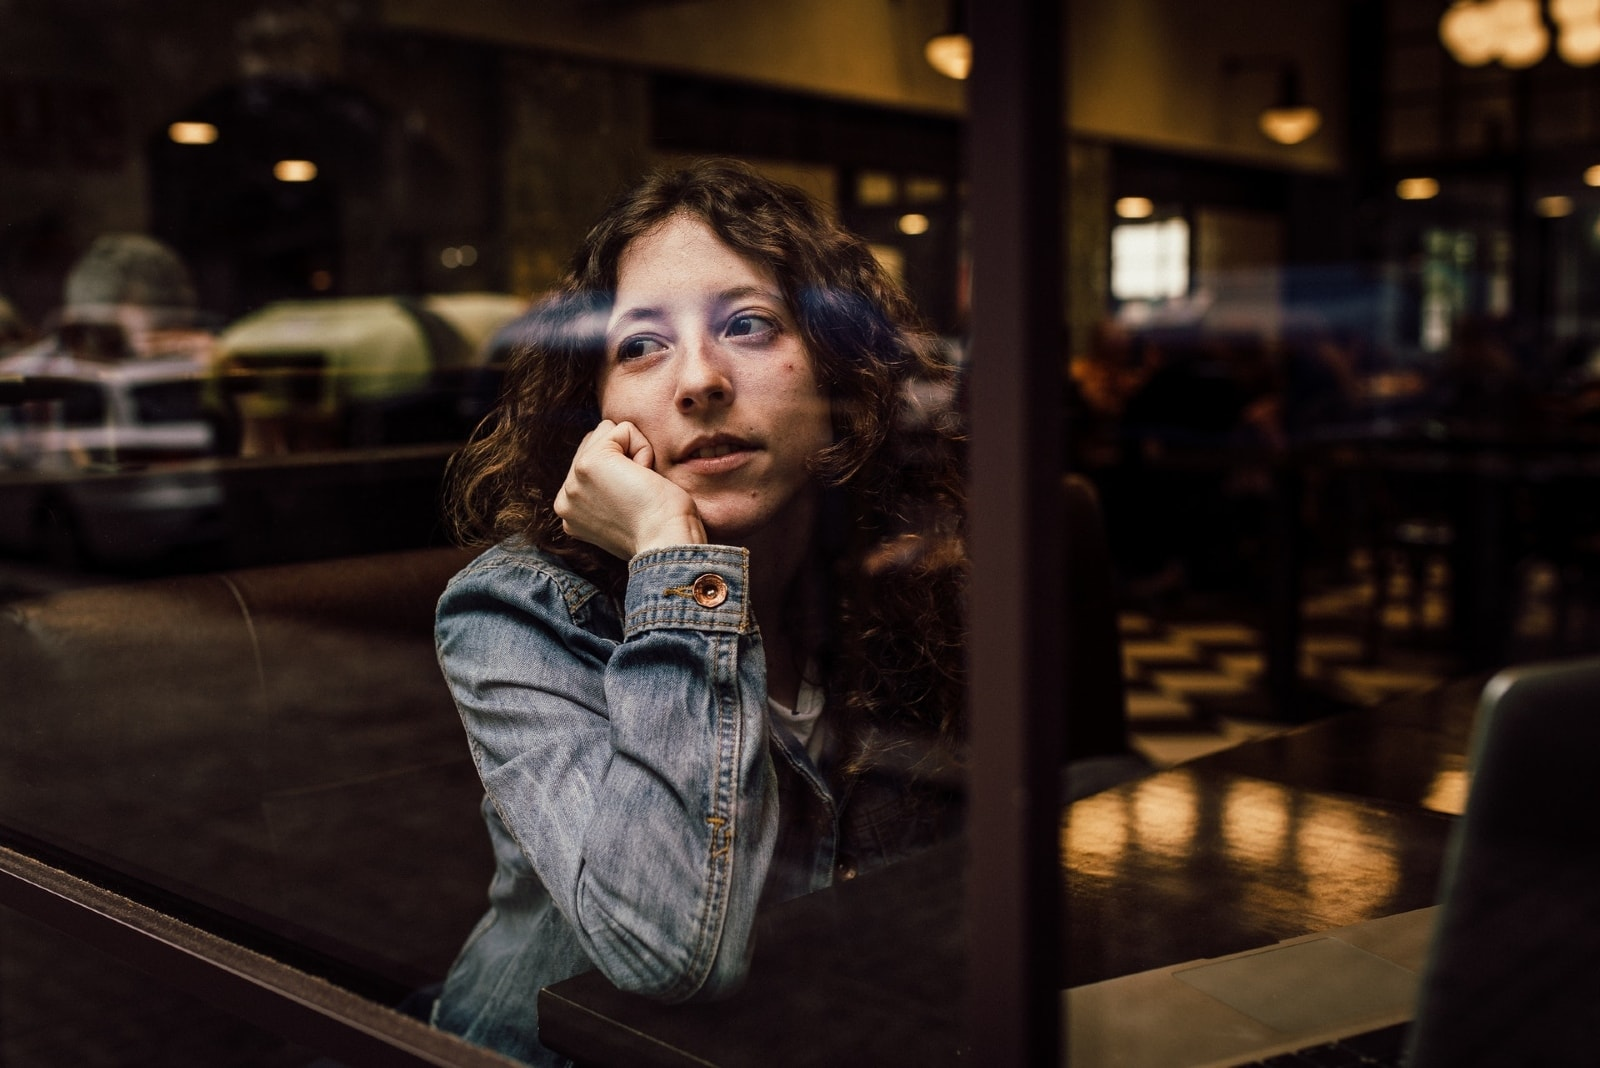 woman in denim jacket leaning on table in cafe